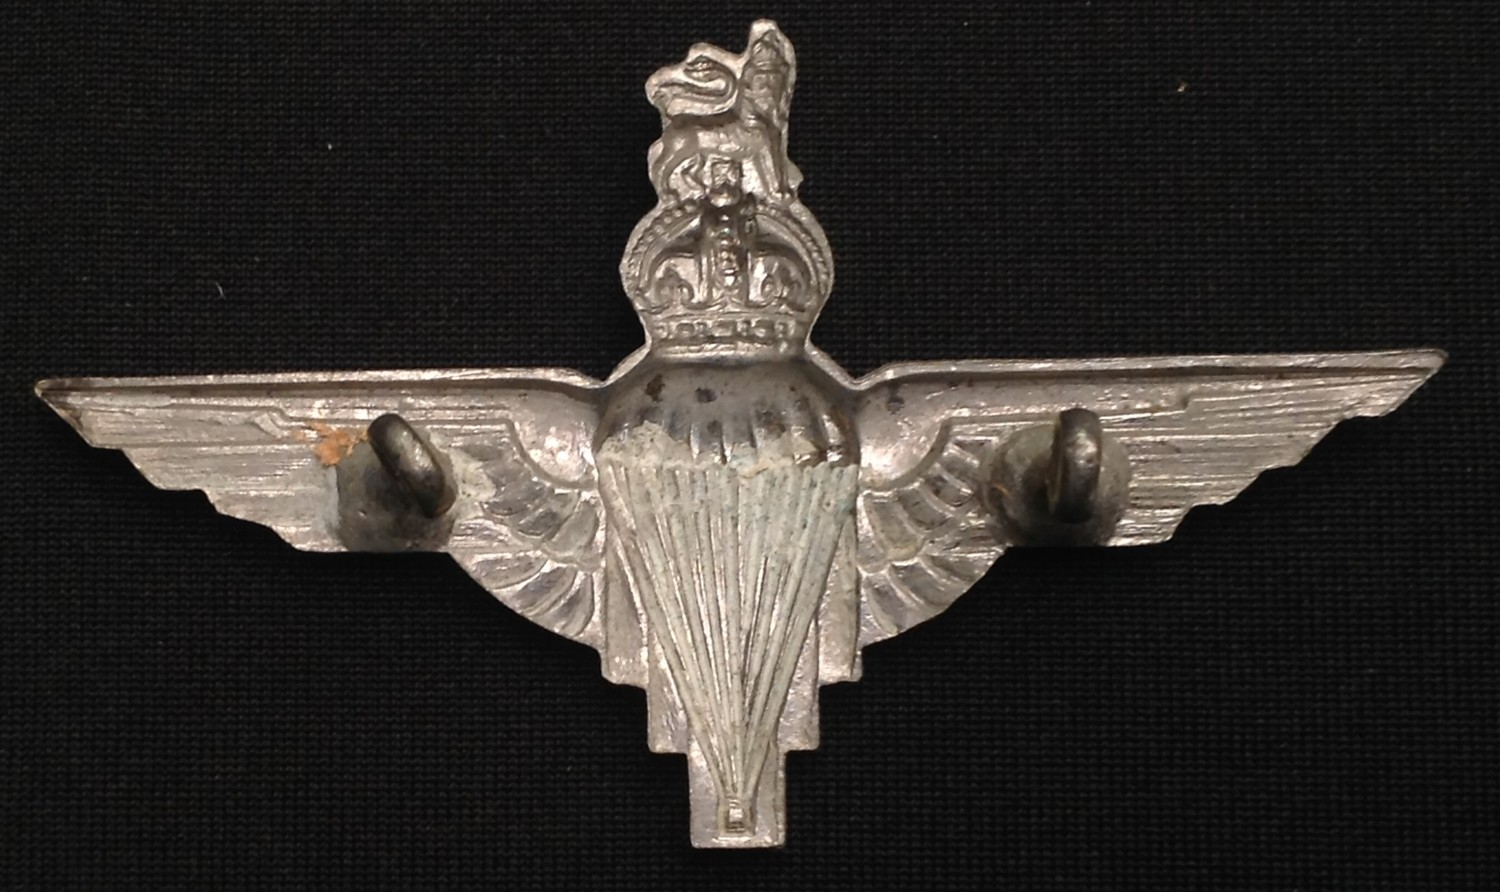 WW2 and later British Cap badges and cloth insignia to include: Kings Crown Parachute Regiment cap - Image 3 of 4